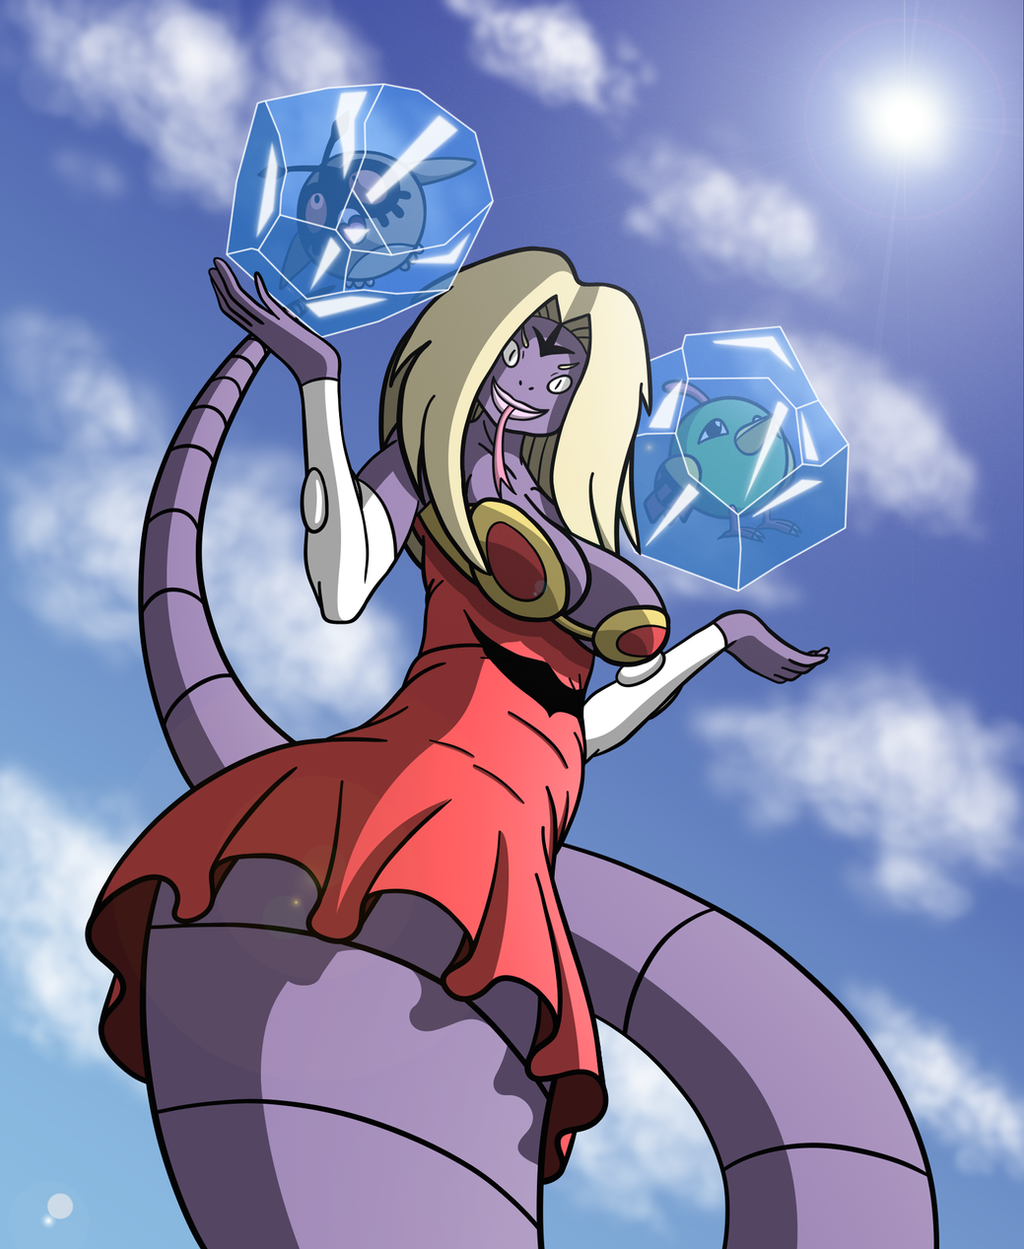 Arbok And Jynx Fusion Pokemon Mashup Challenge By Hado Abyss On Deviantart